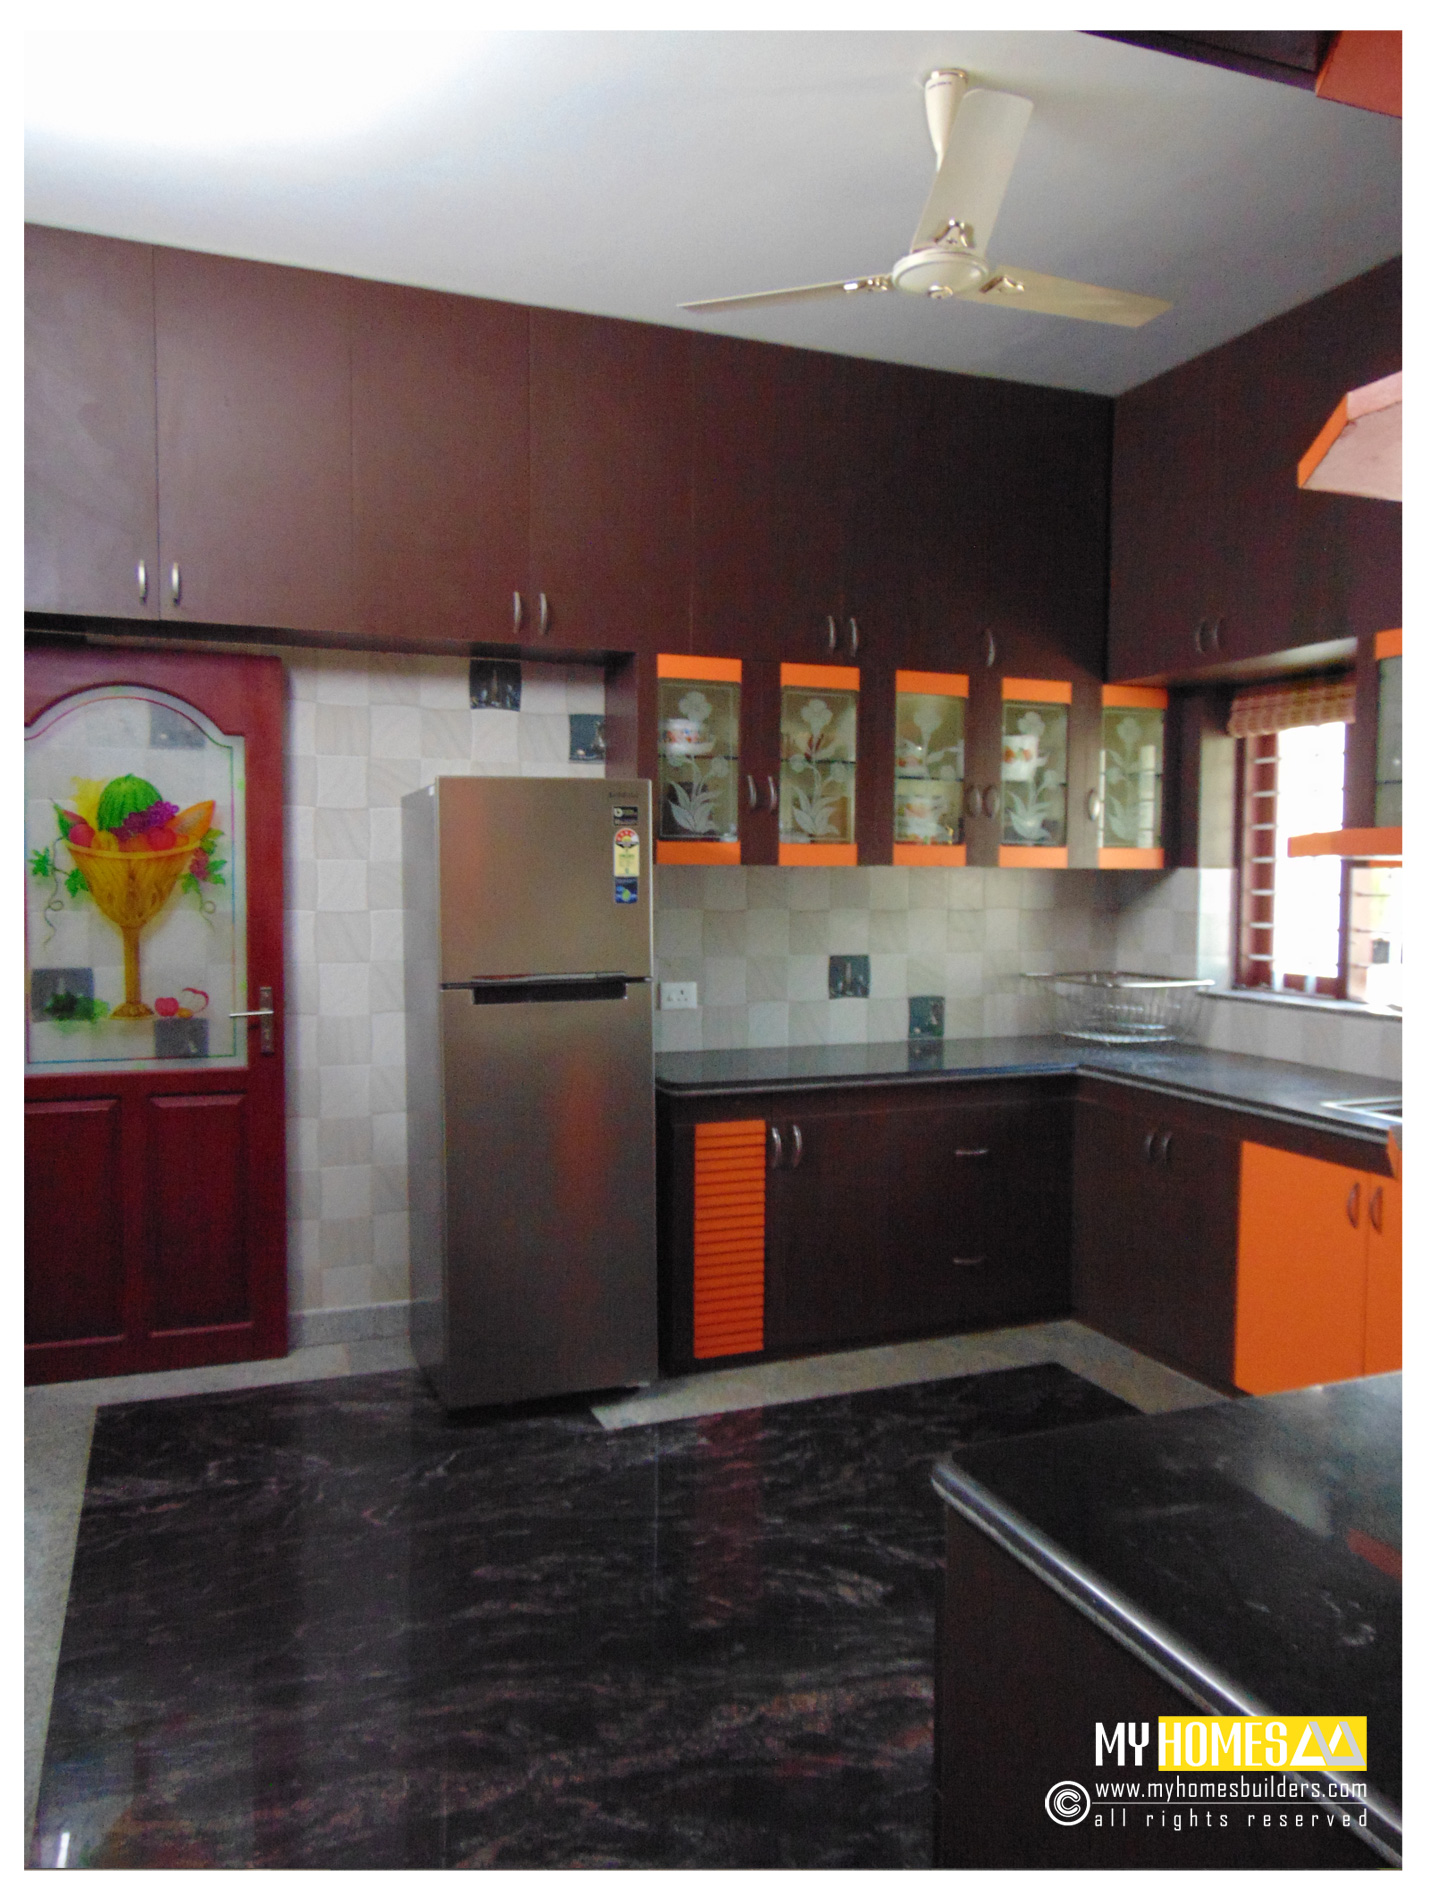 Kerala kitchen designs idea in modular style for house in for Style at home kitchen ideas